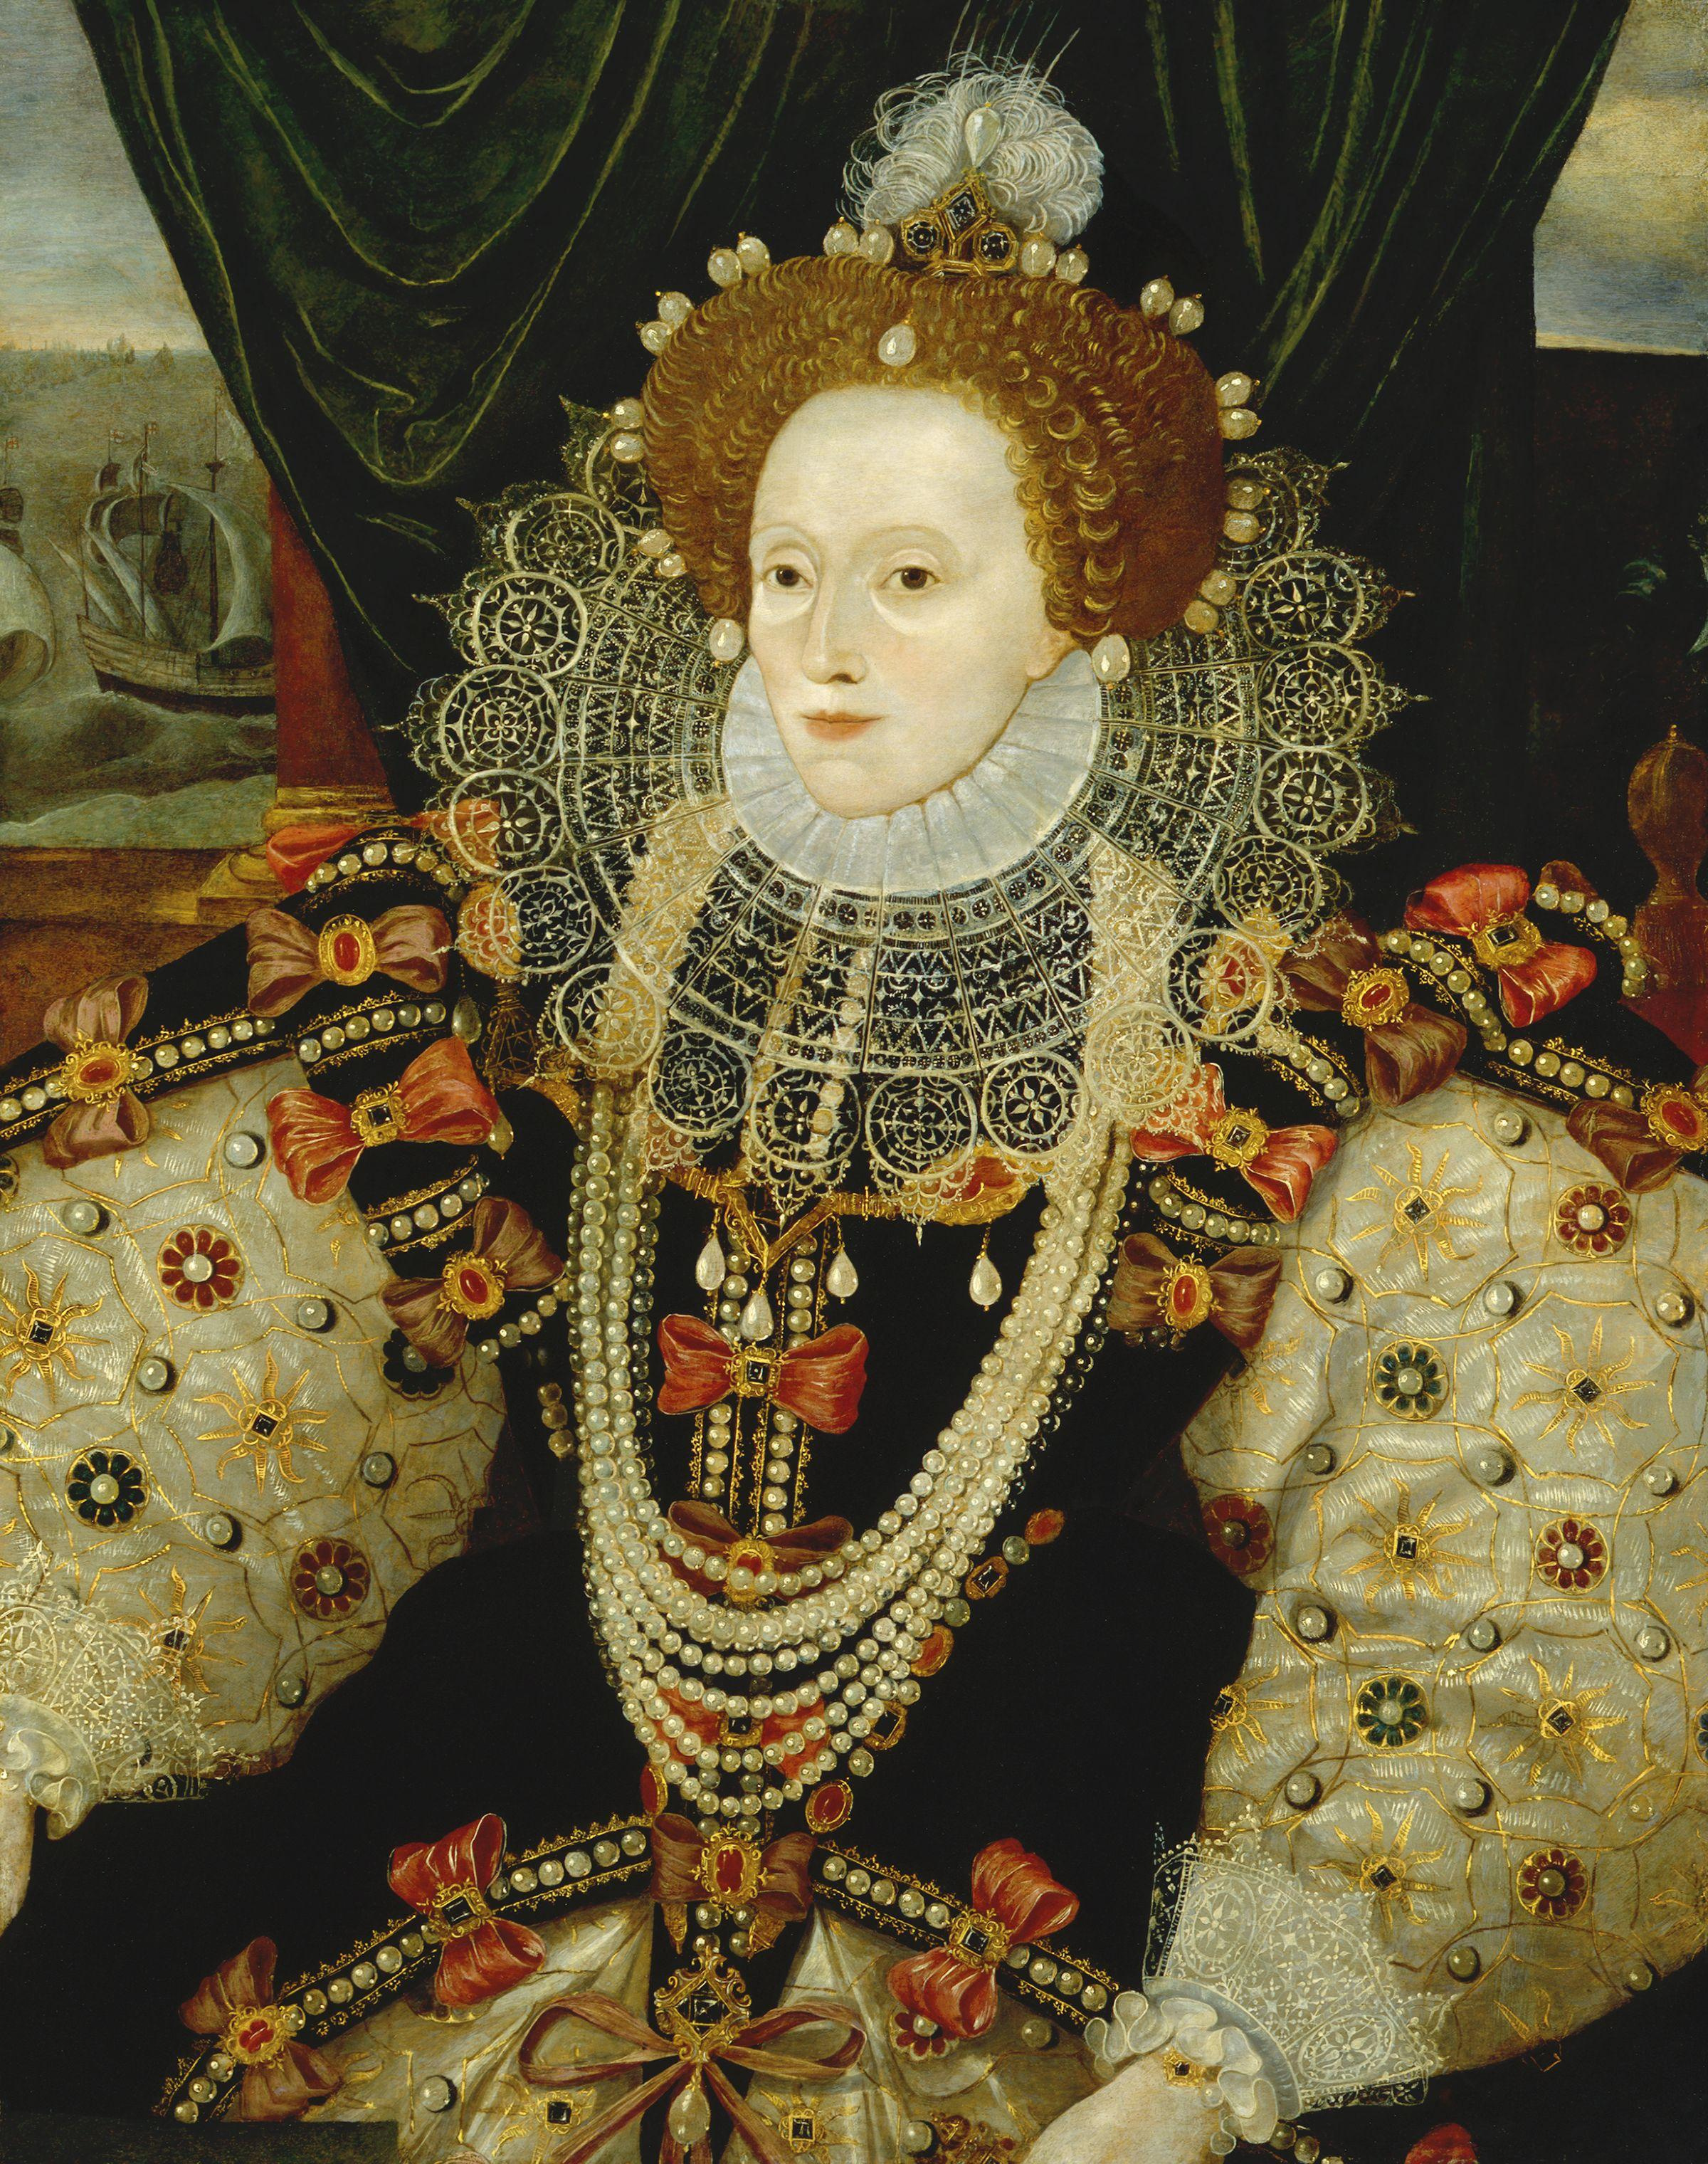 http://upload.wikimedia.org/wikipedia/commons/b/bf/Queen_Elizabeth_I_by_George_Gower.jpg